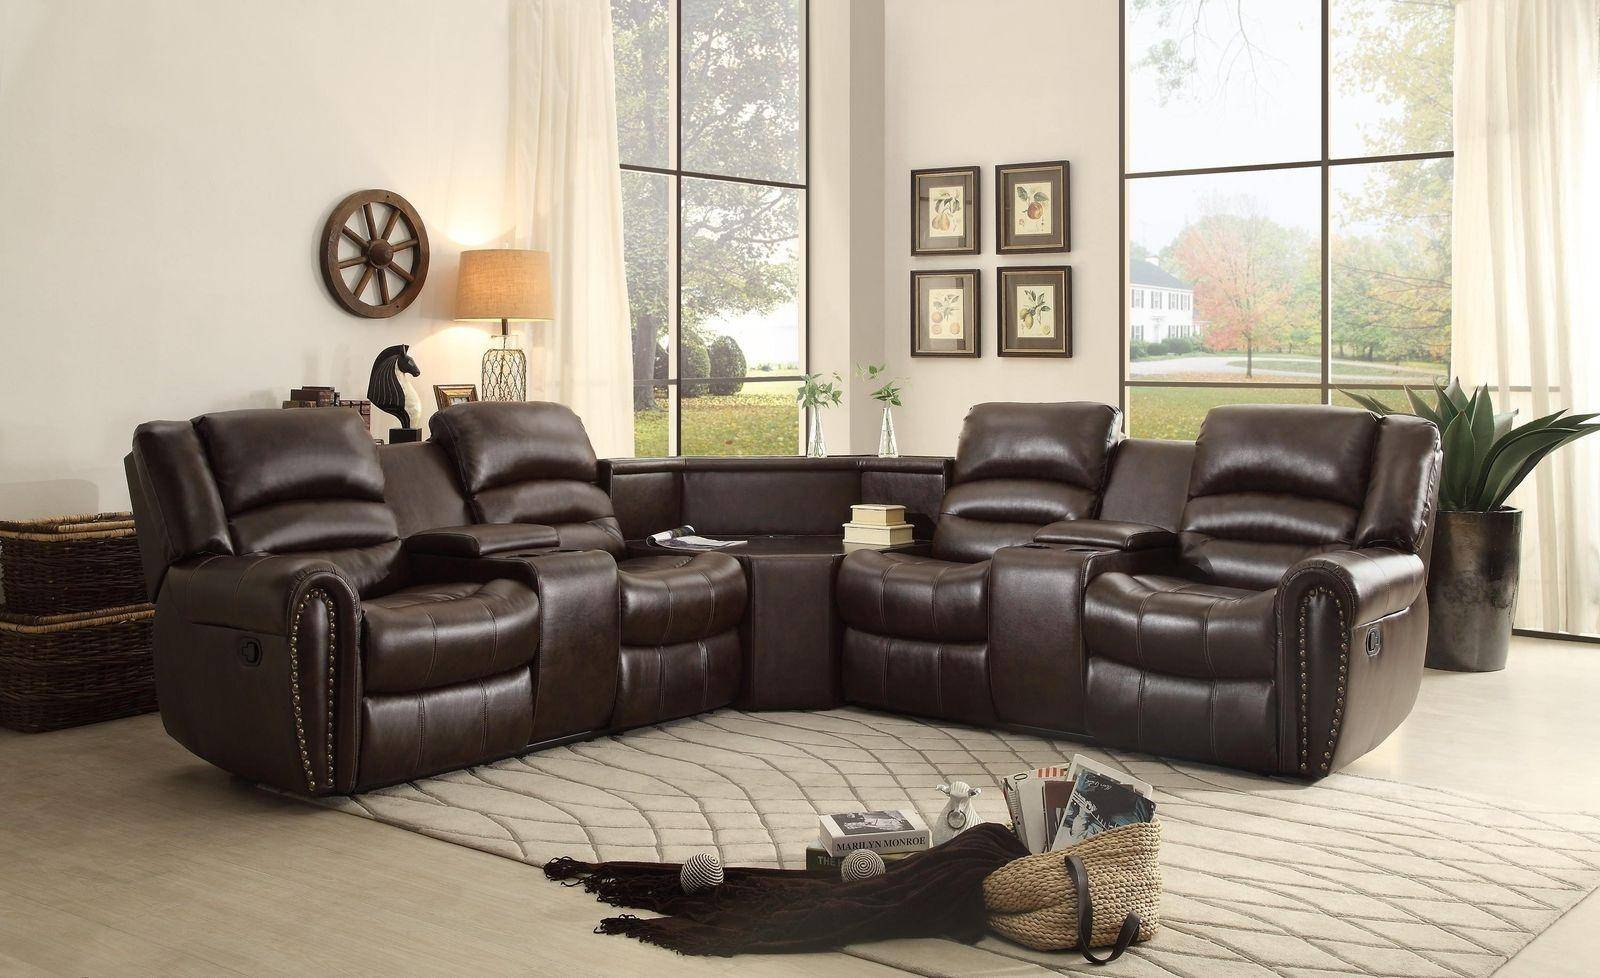 5 Best Reclining Sofas (Sept. 2019) – Reviews & Buying Guide